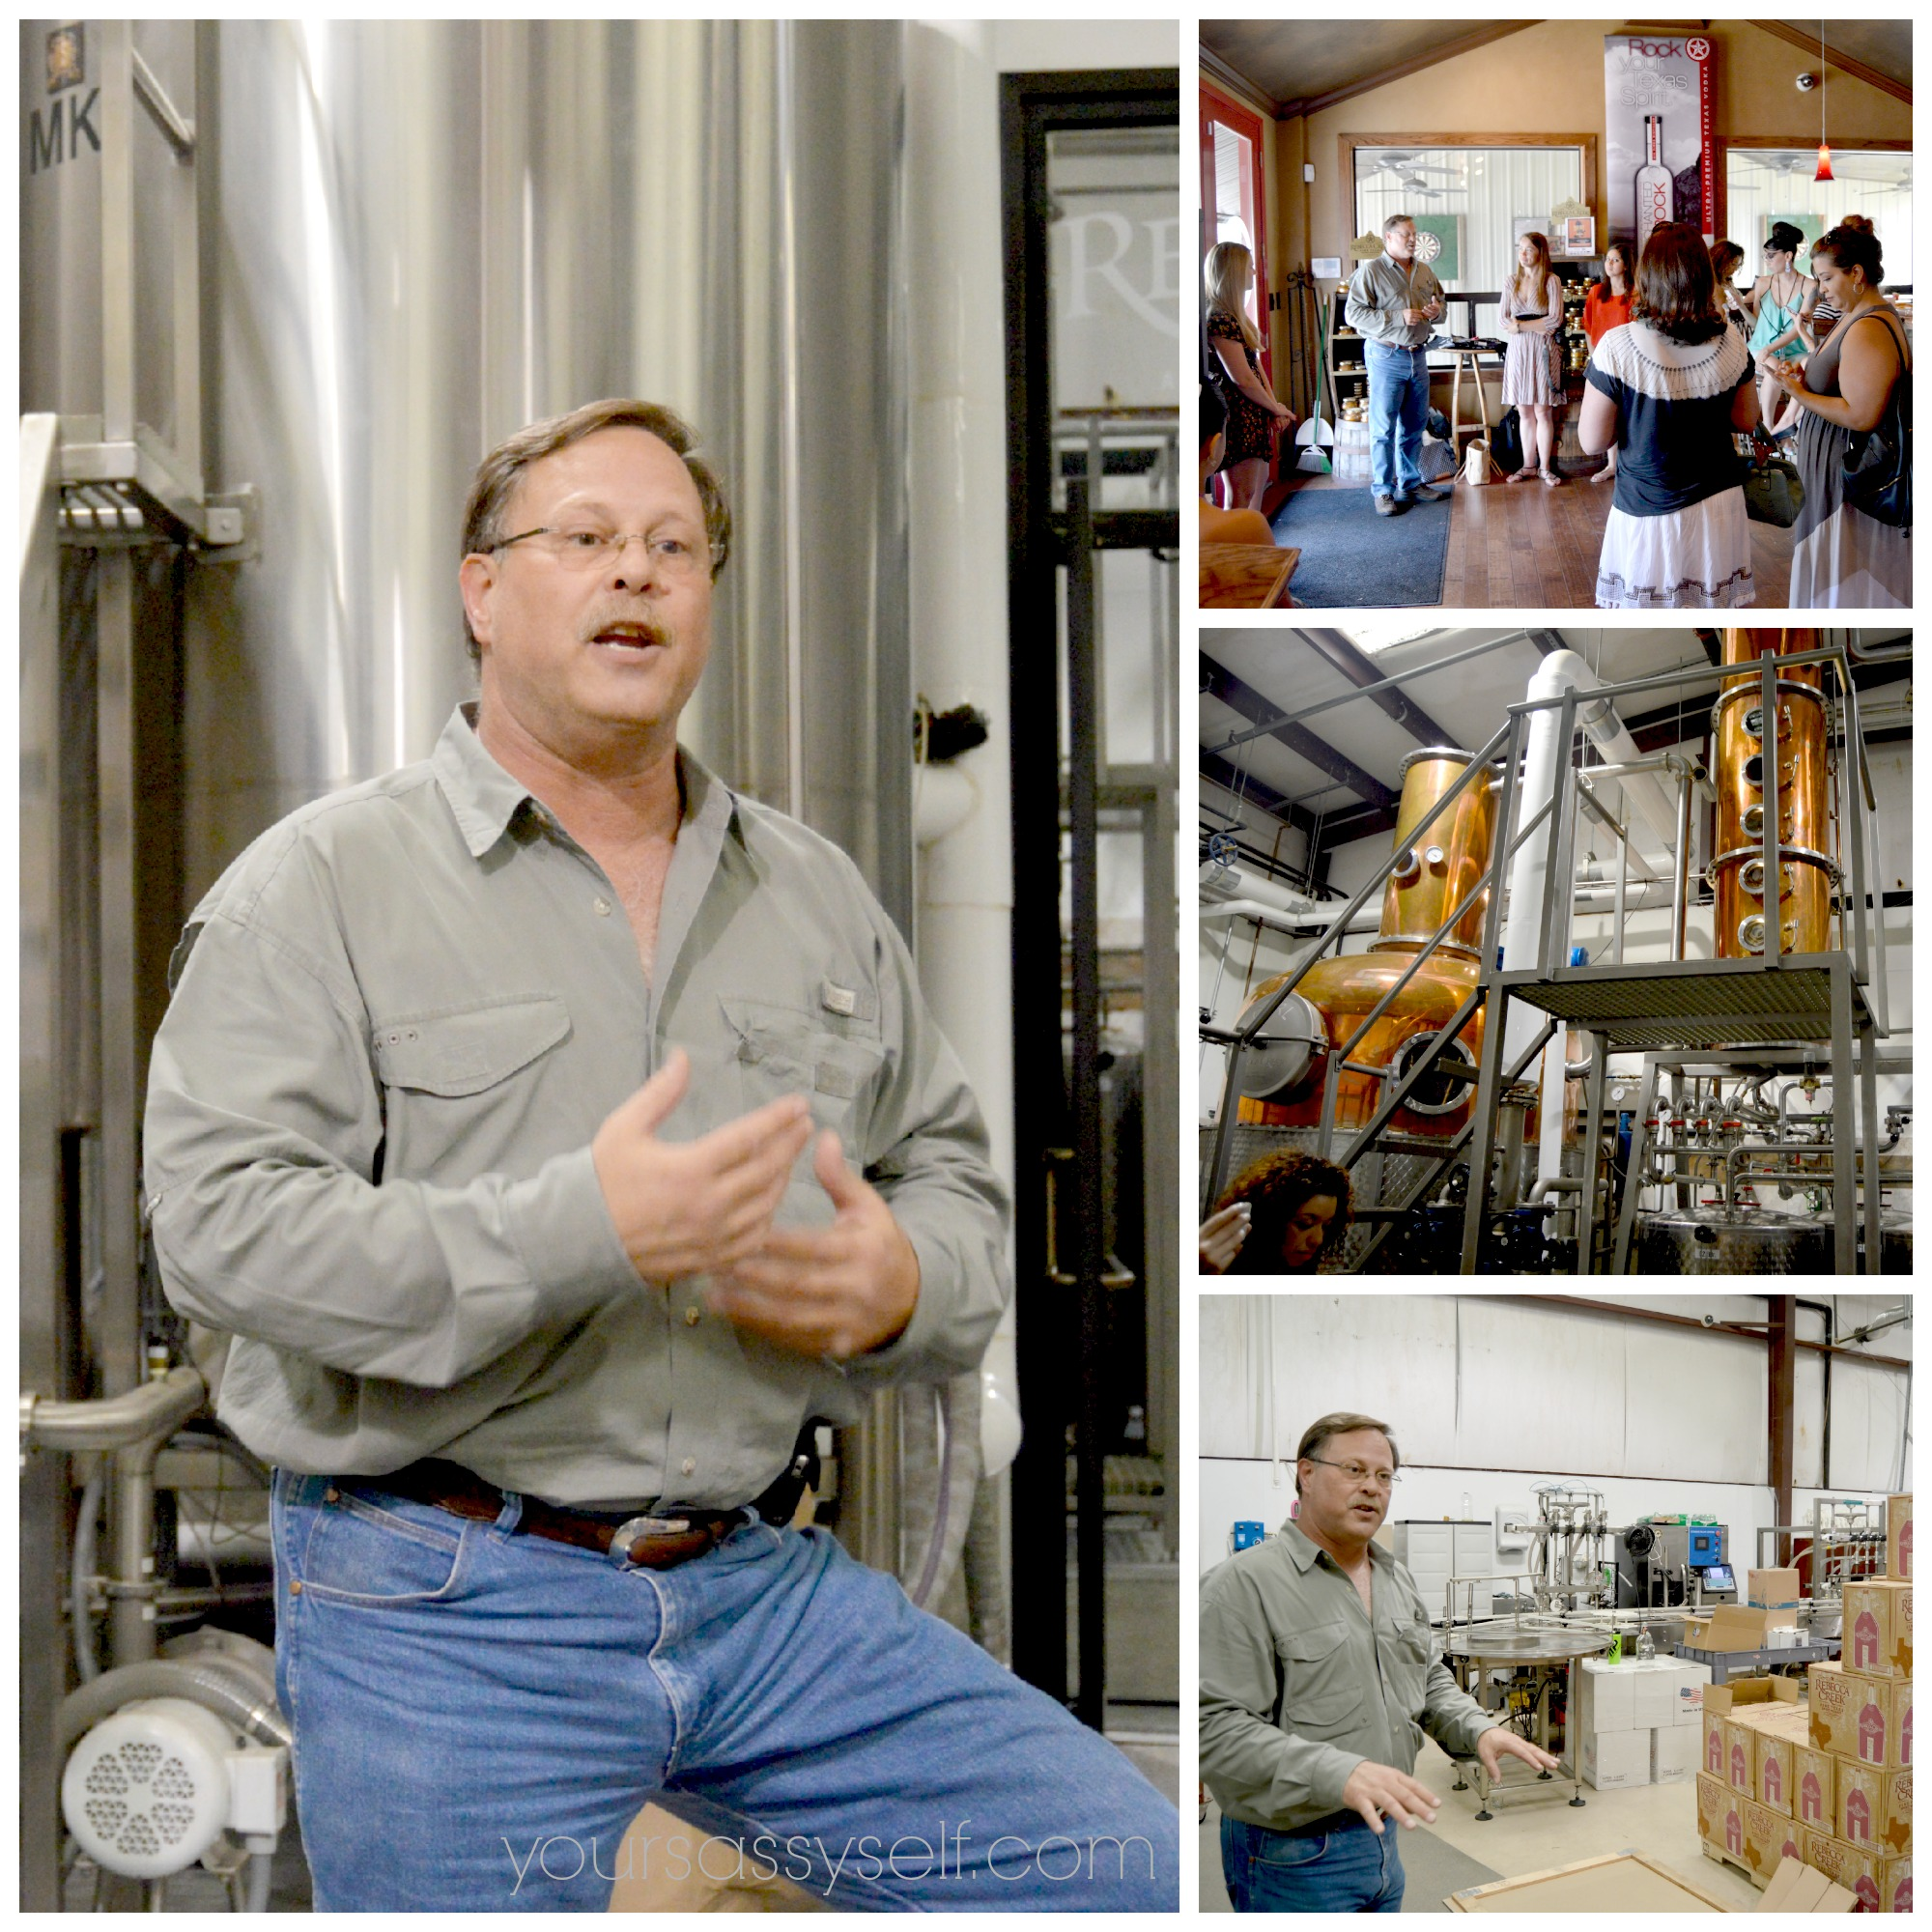 SA Whiskey Bloggers Getting Tour by Russell Silverman, VP of Rebecca Creek Distillery - yoursassyself.com